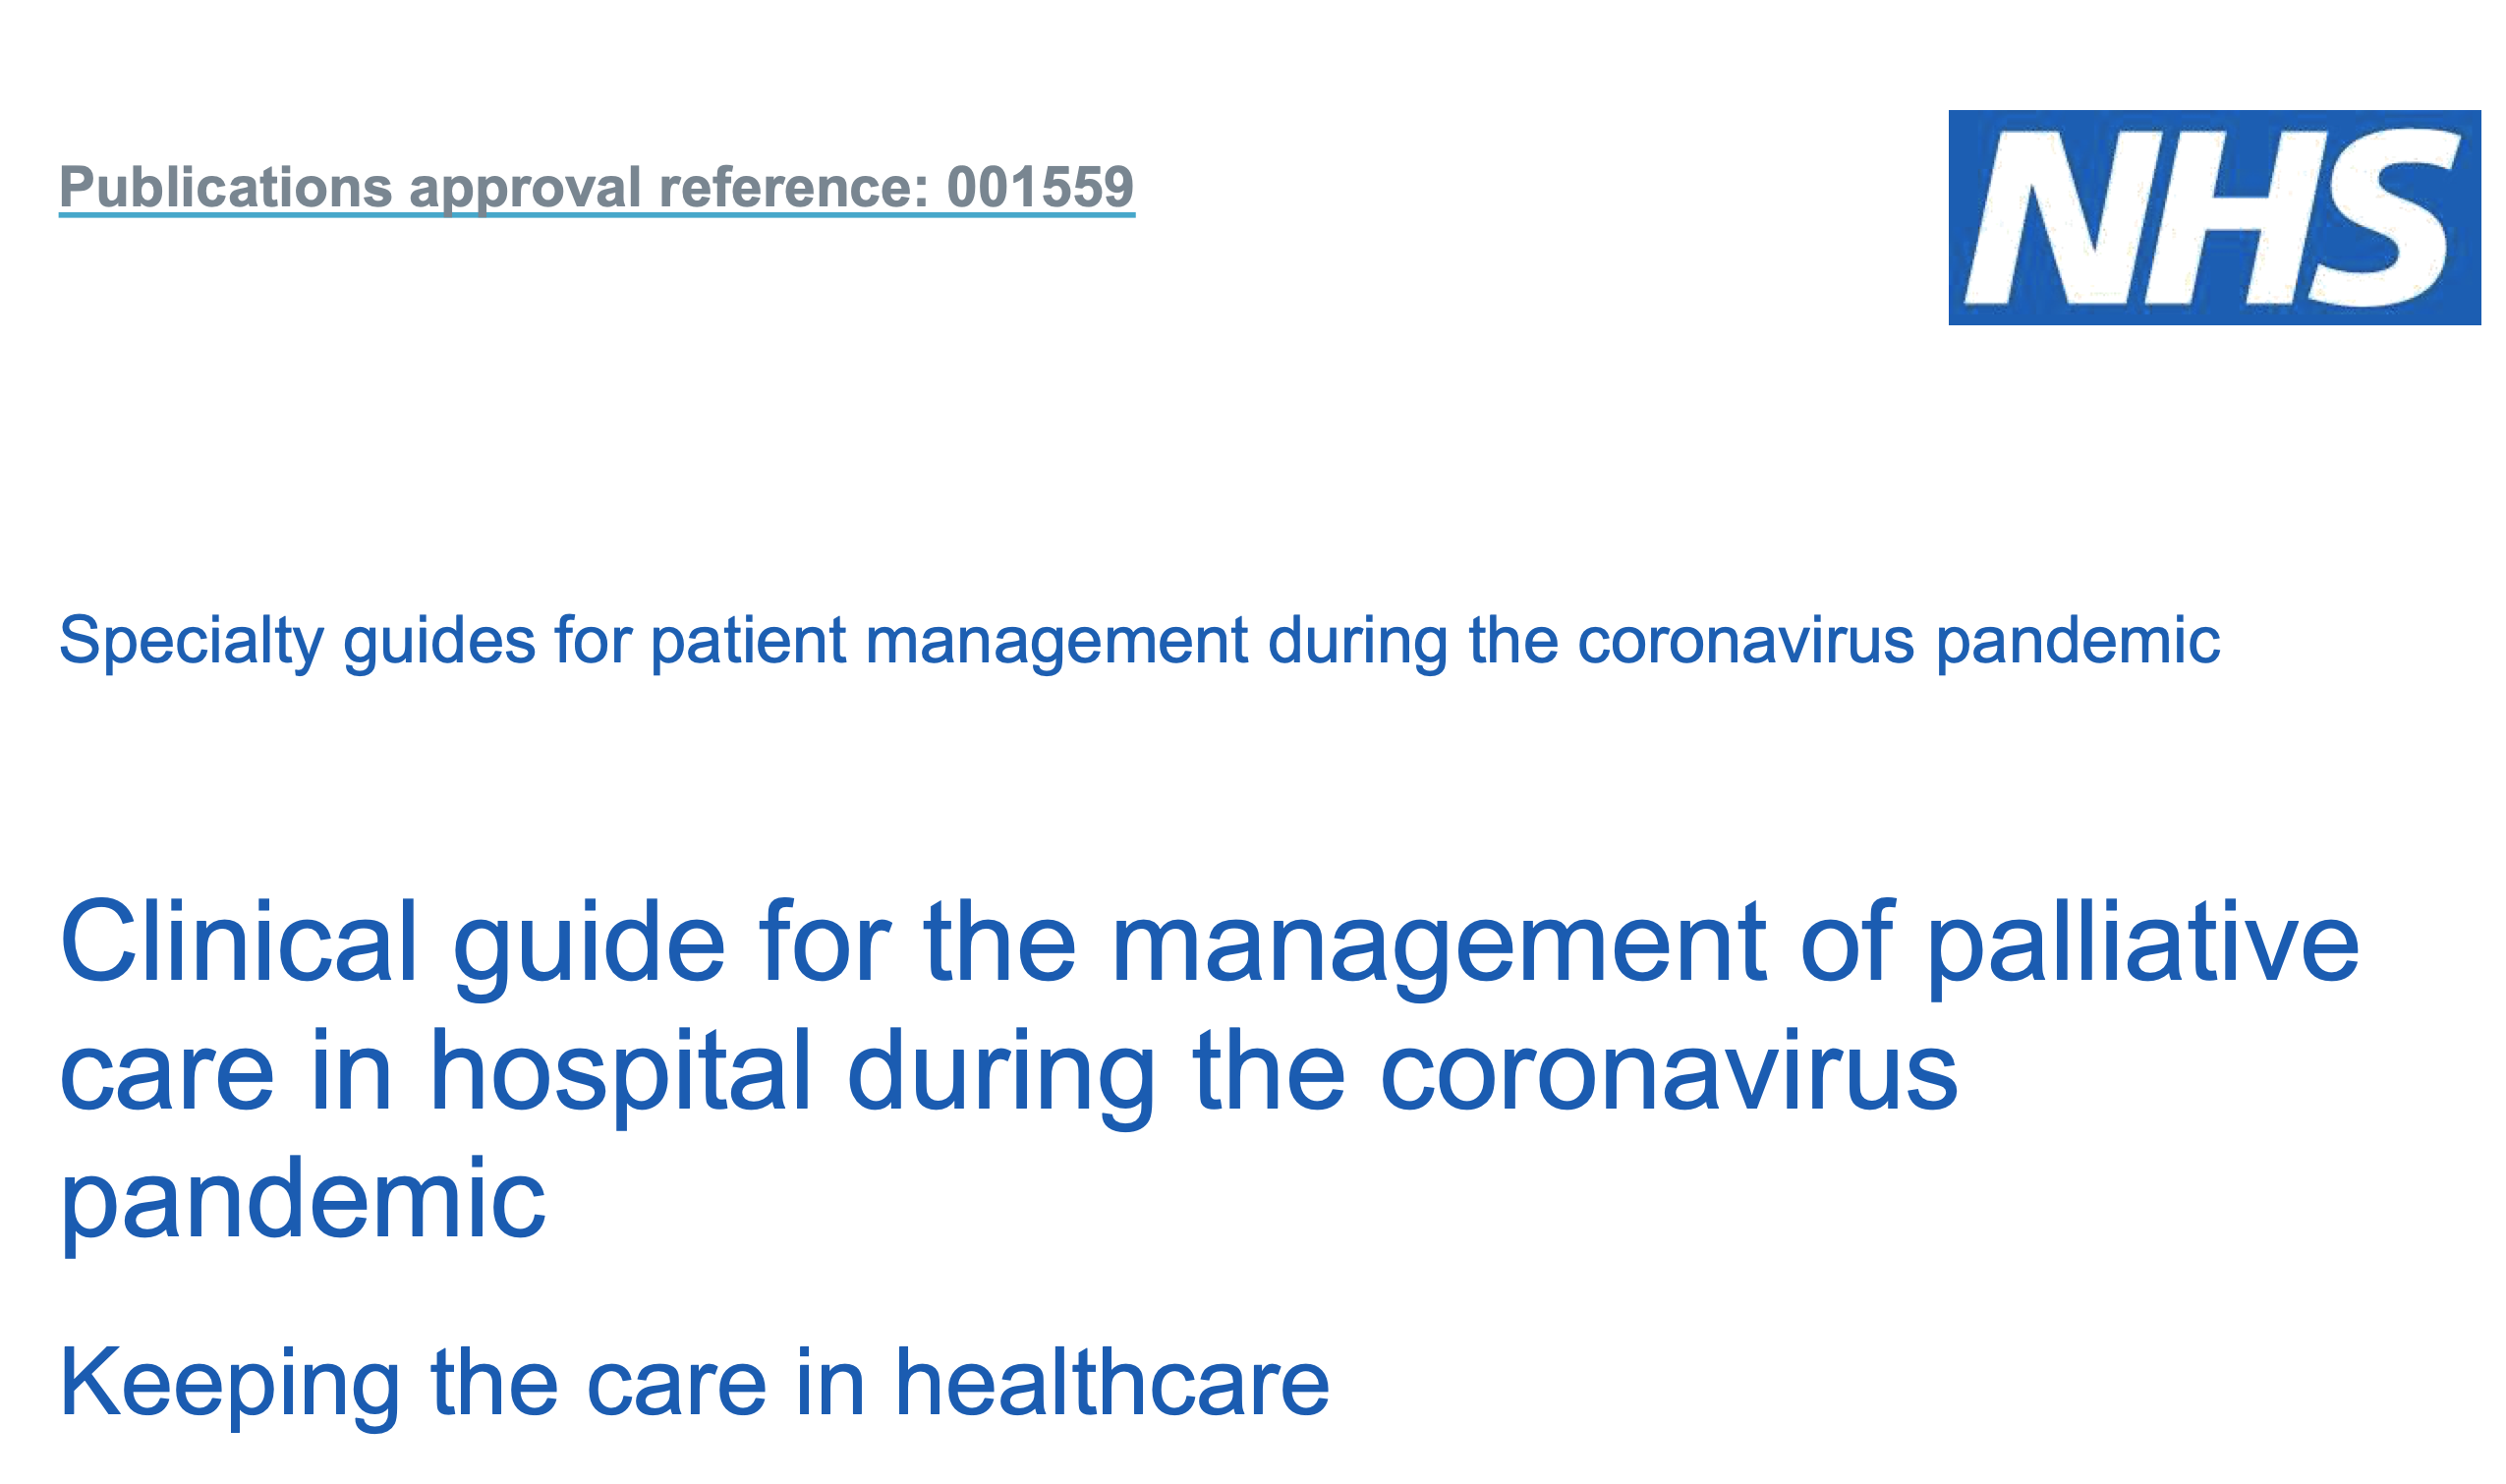 Palliative Care in hospital during the coronavirus pandemic - NHSE featured image